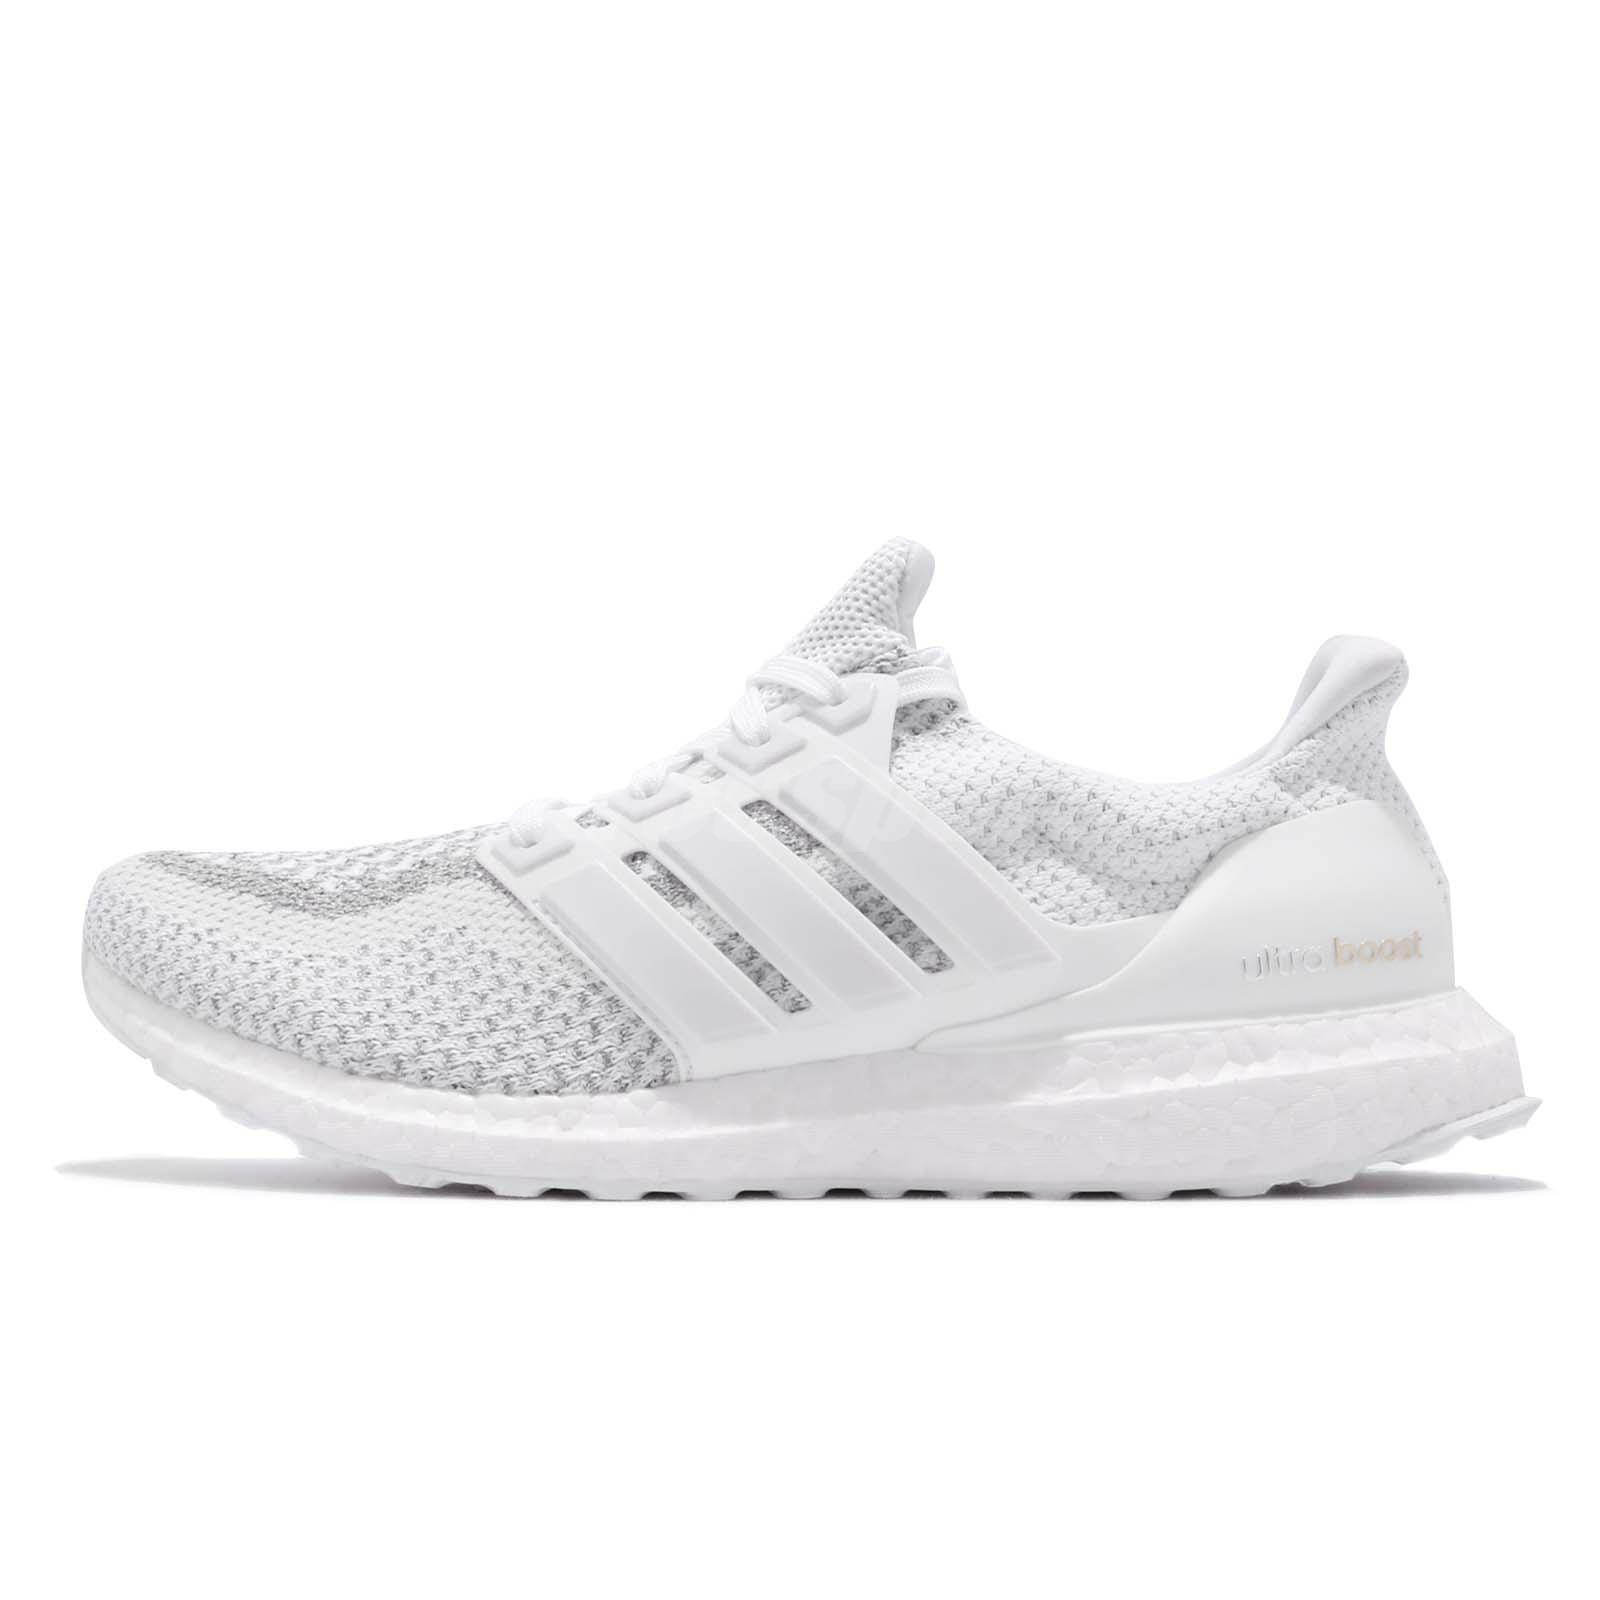 35a73f00c6442 adidas UltraBOOST LTD 2.0 Limited White Reflective Men Running Shoes BB3928